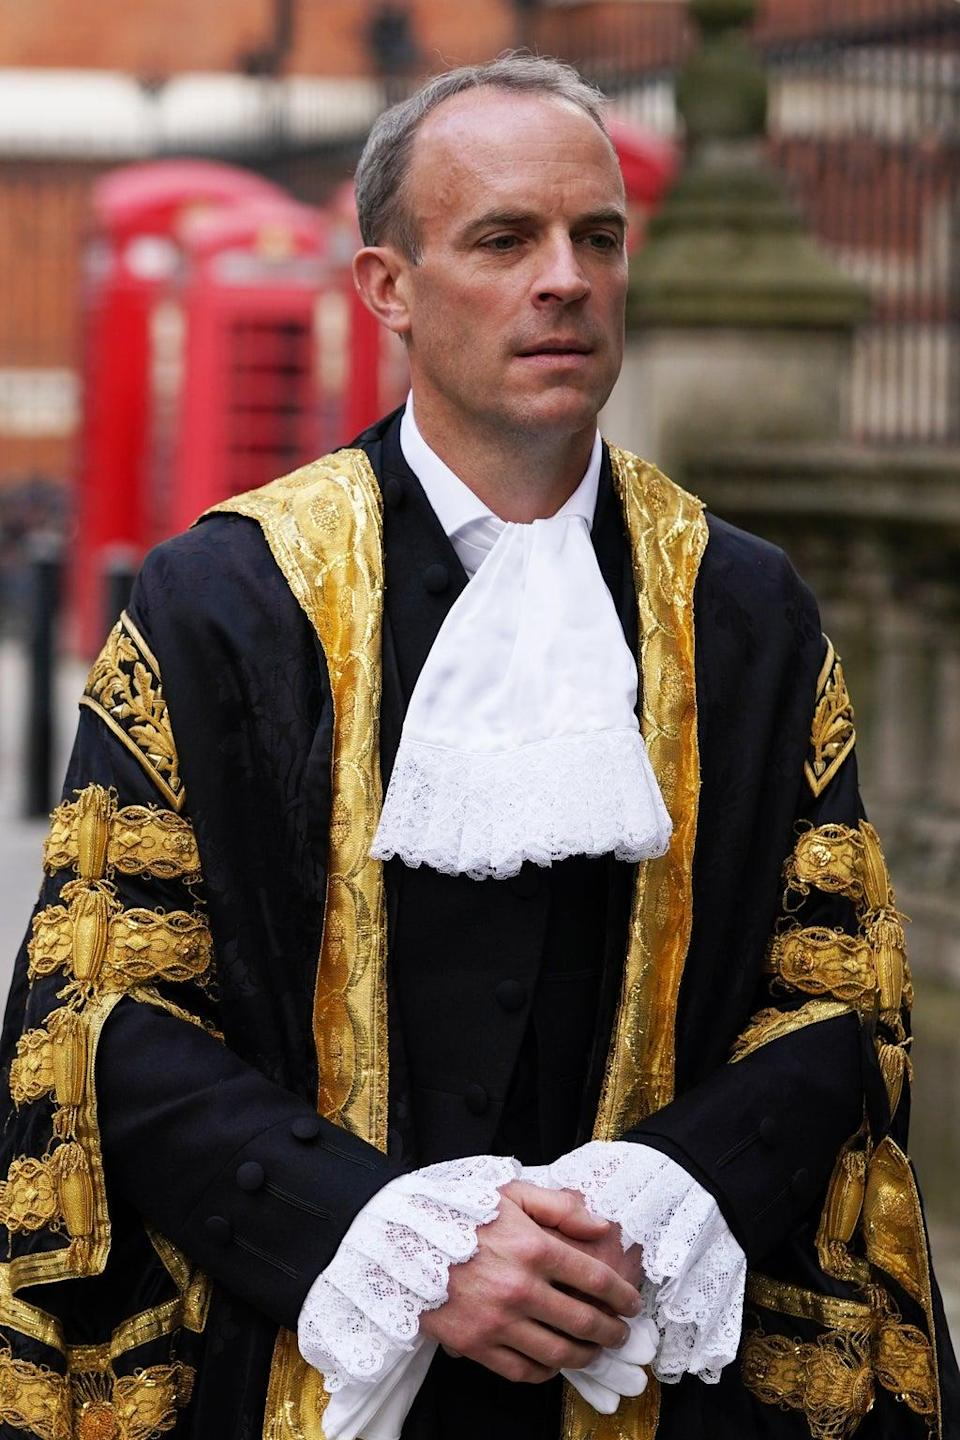 Dominic Raab arrives at the Judge's entrance to the Royal Courts of Justice in London, ahead of his swearing in ceremony as Lord Chancellor (Gareth Fuller/PA) (PA Wire)